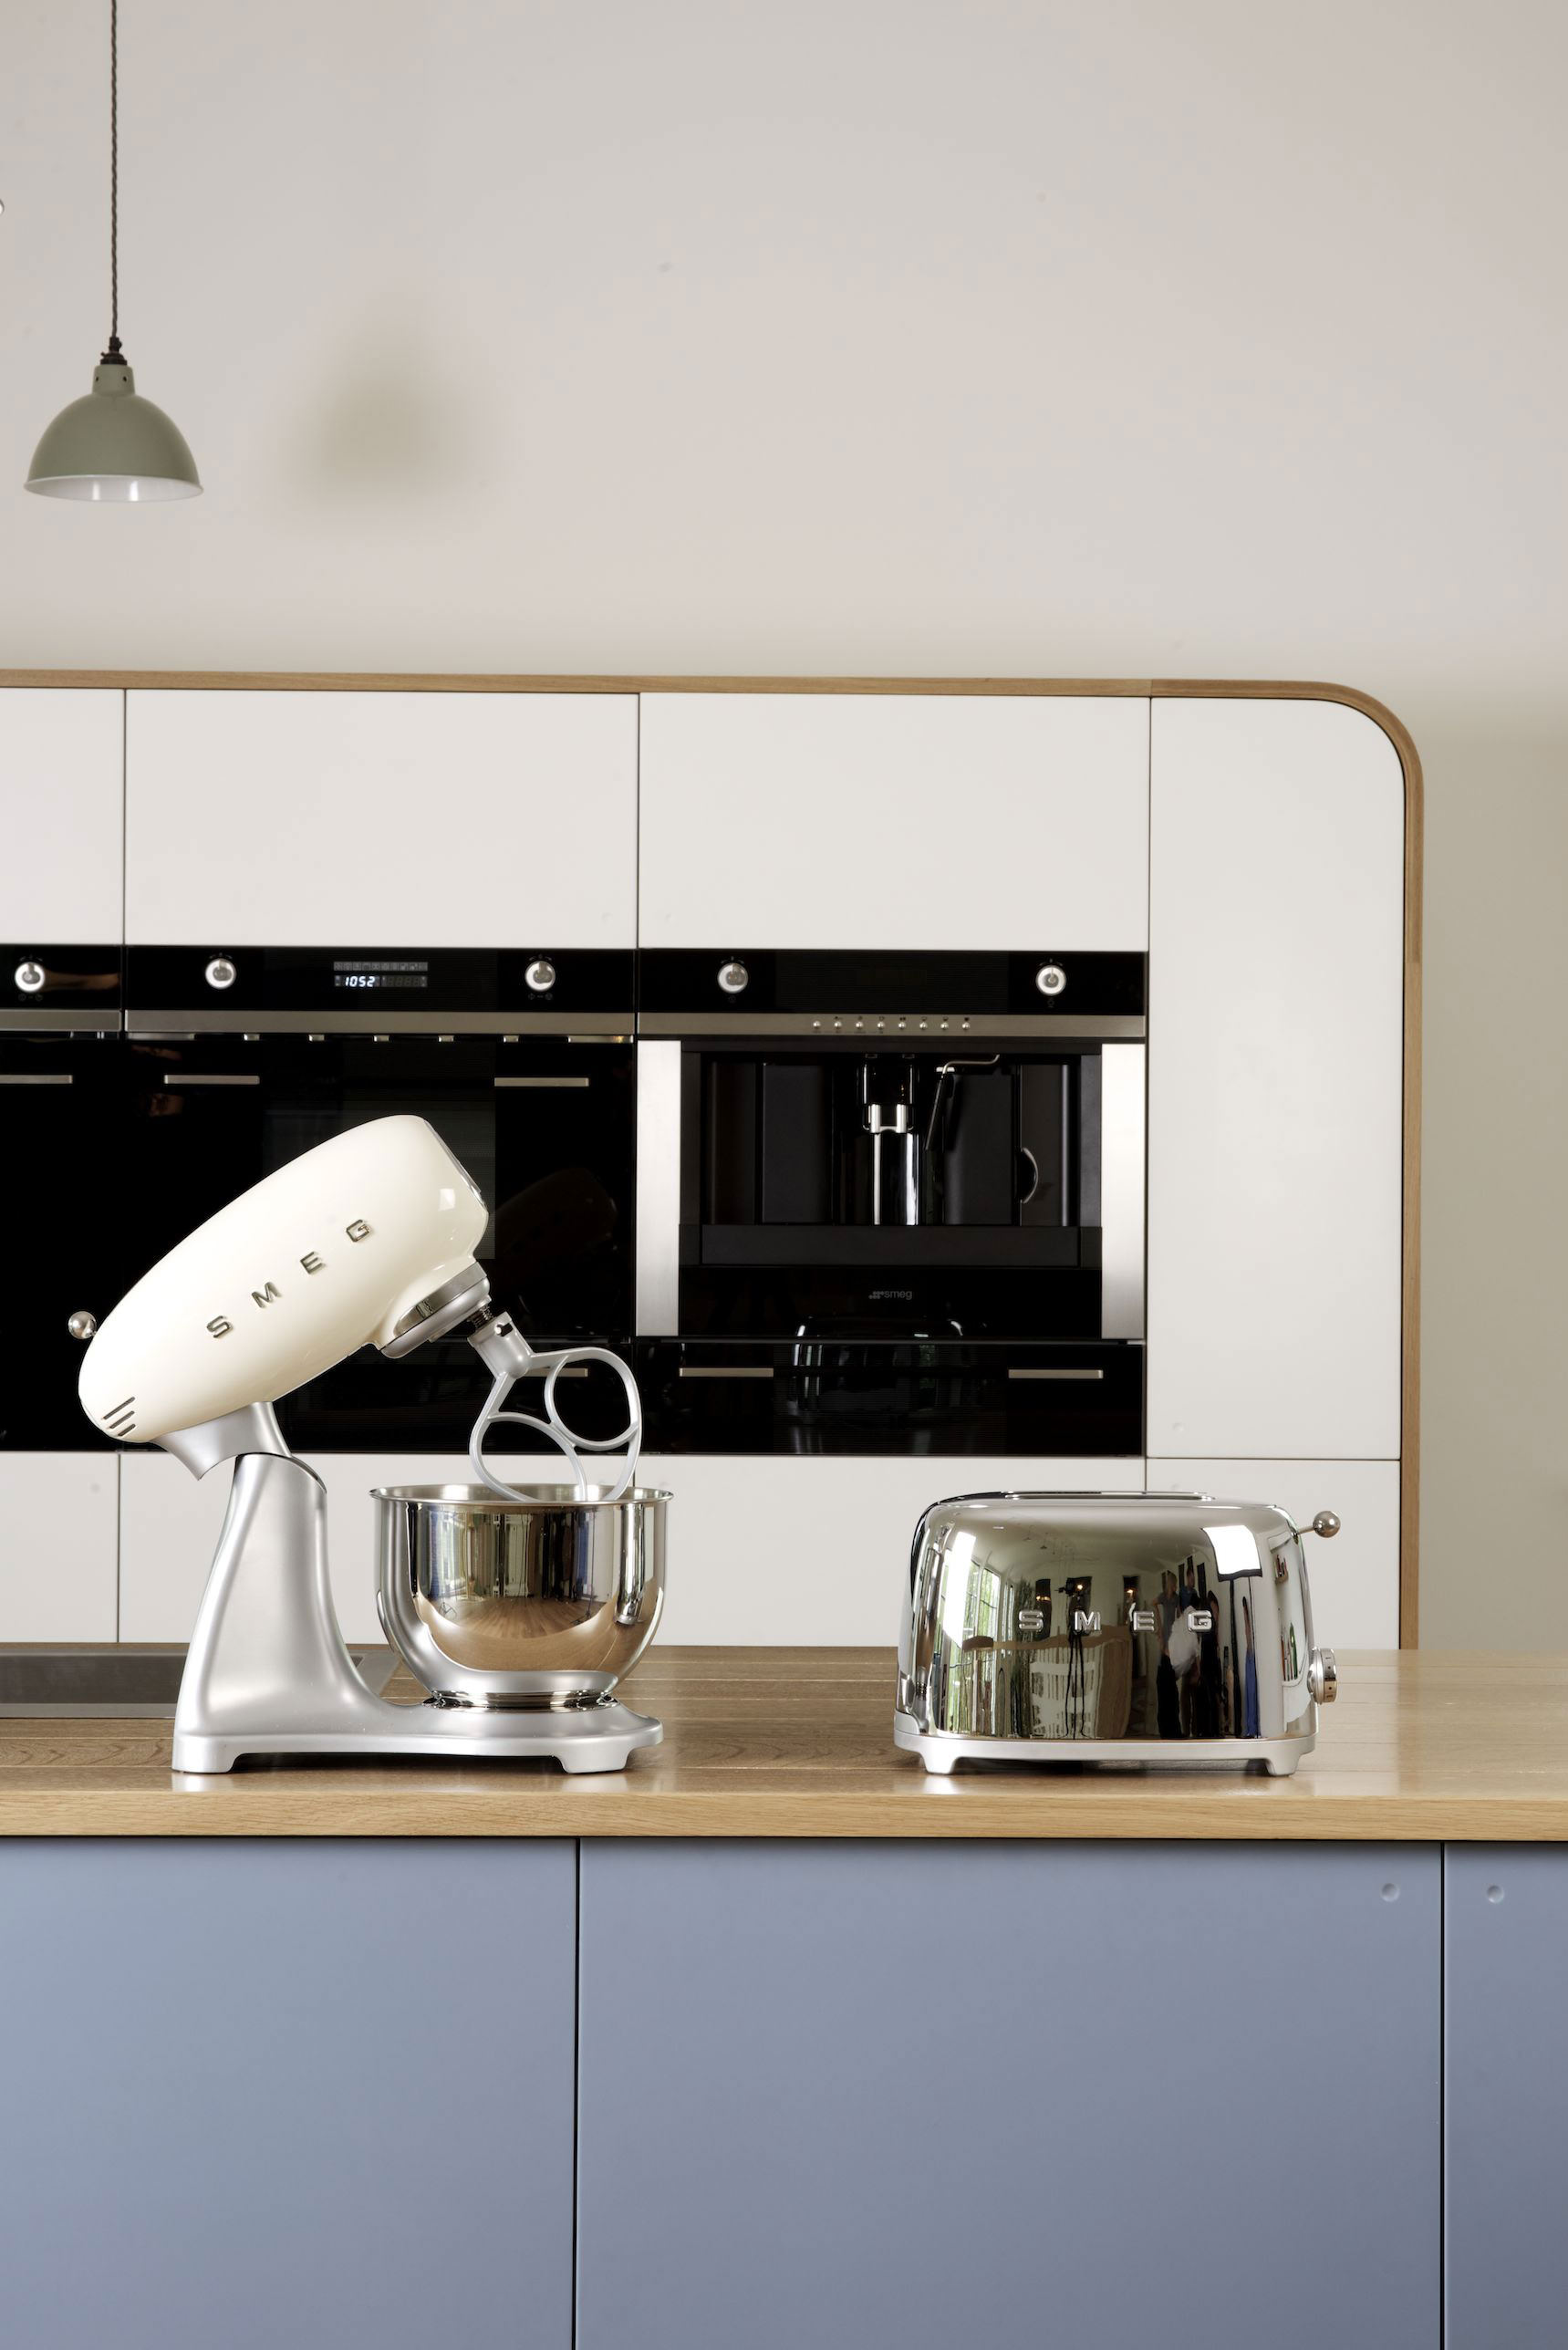 Retro Kitchen Small Appliances Photoshoot Of Our Air Kitchen With Smegs Lovely New Retro Kettles